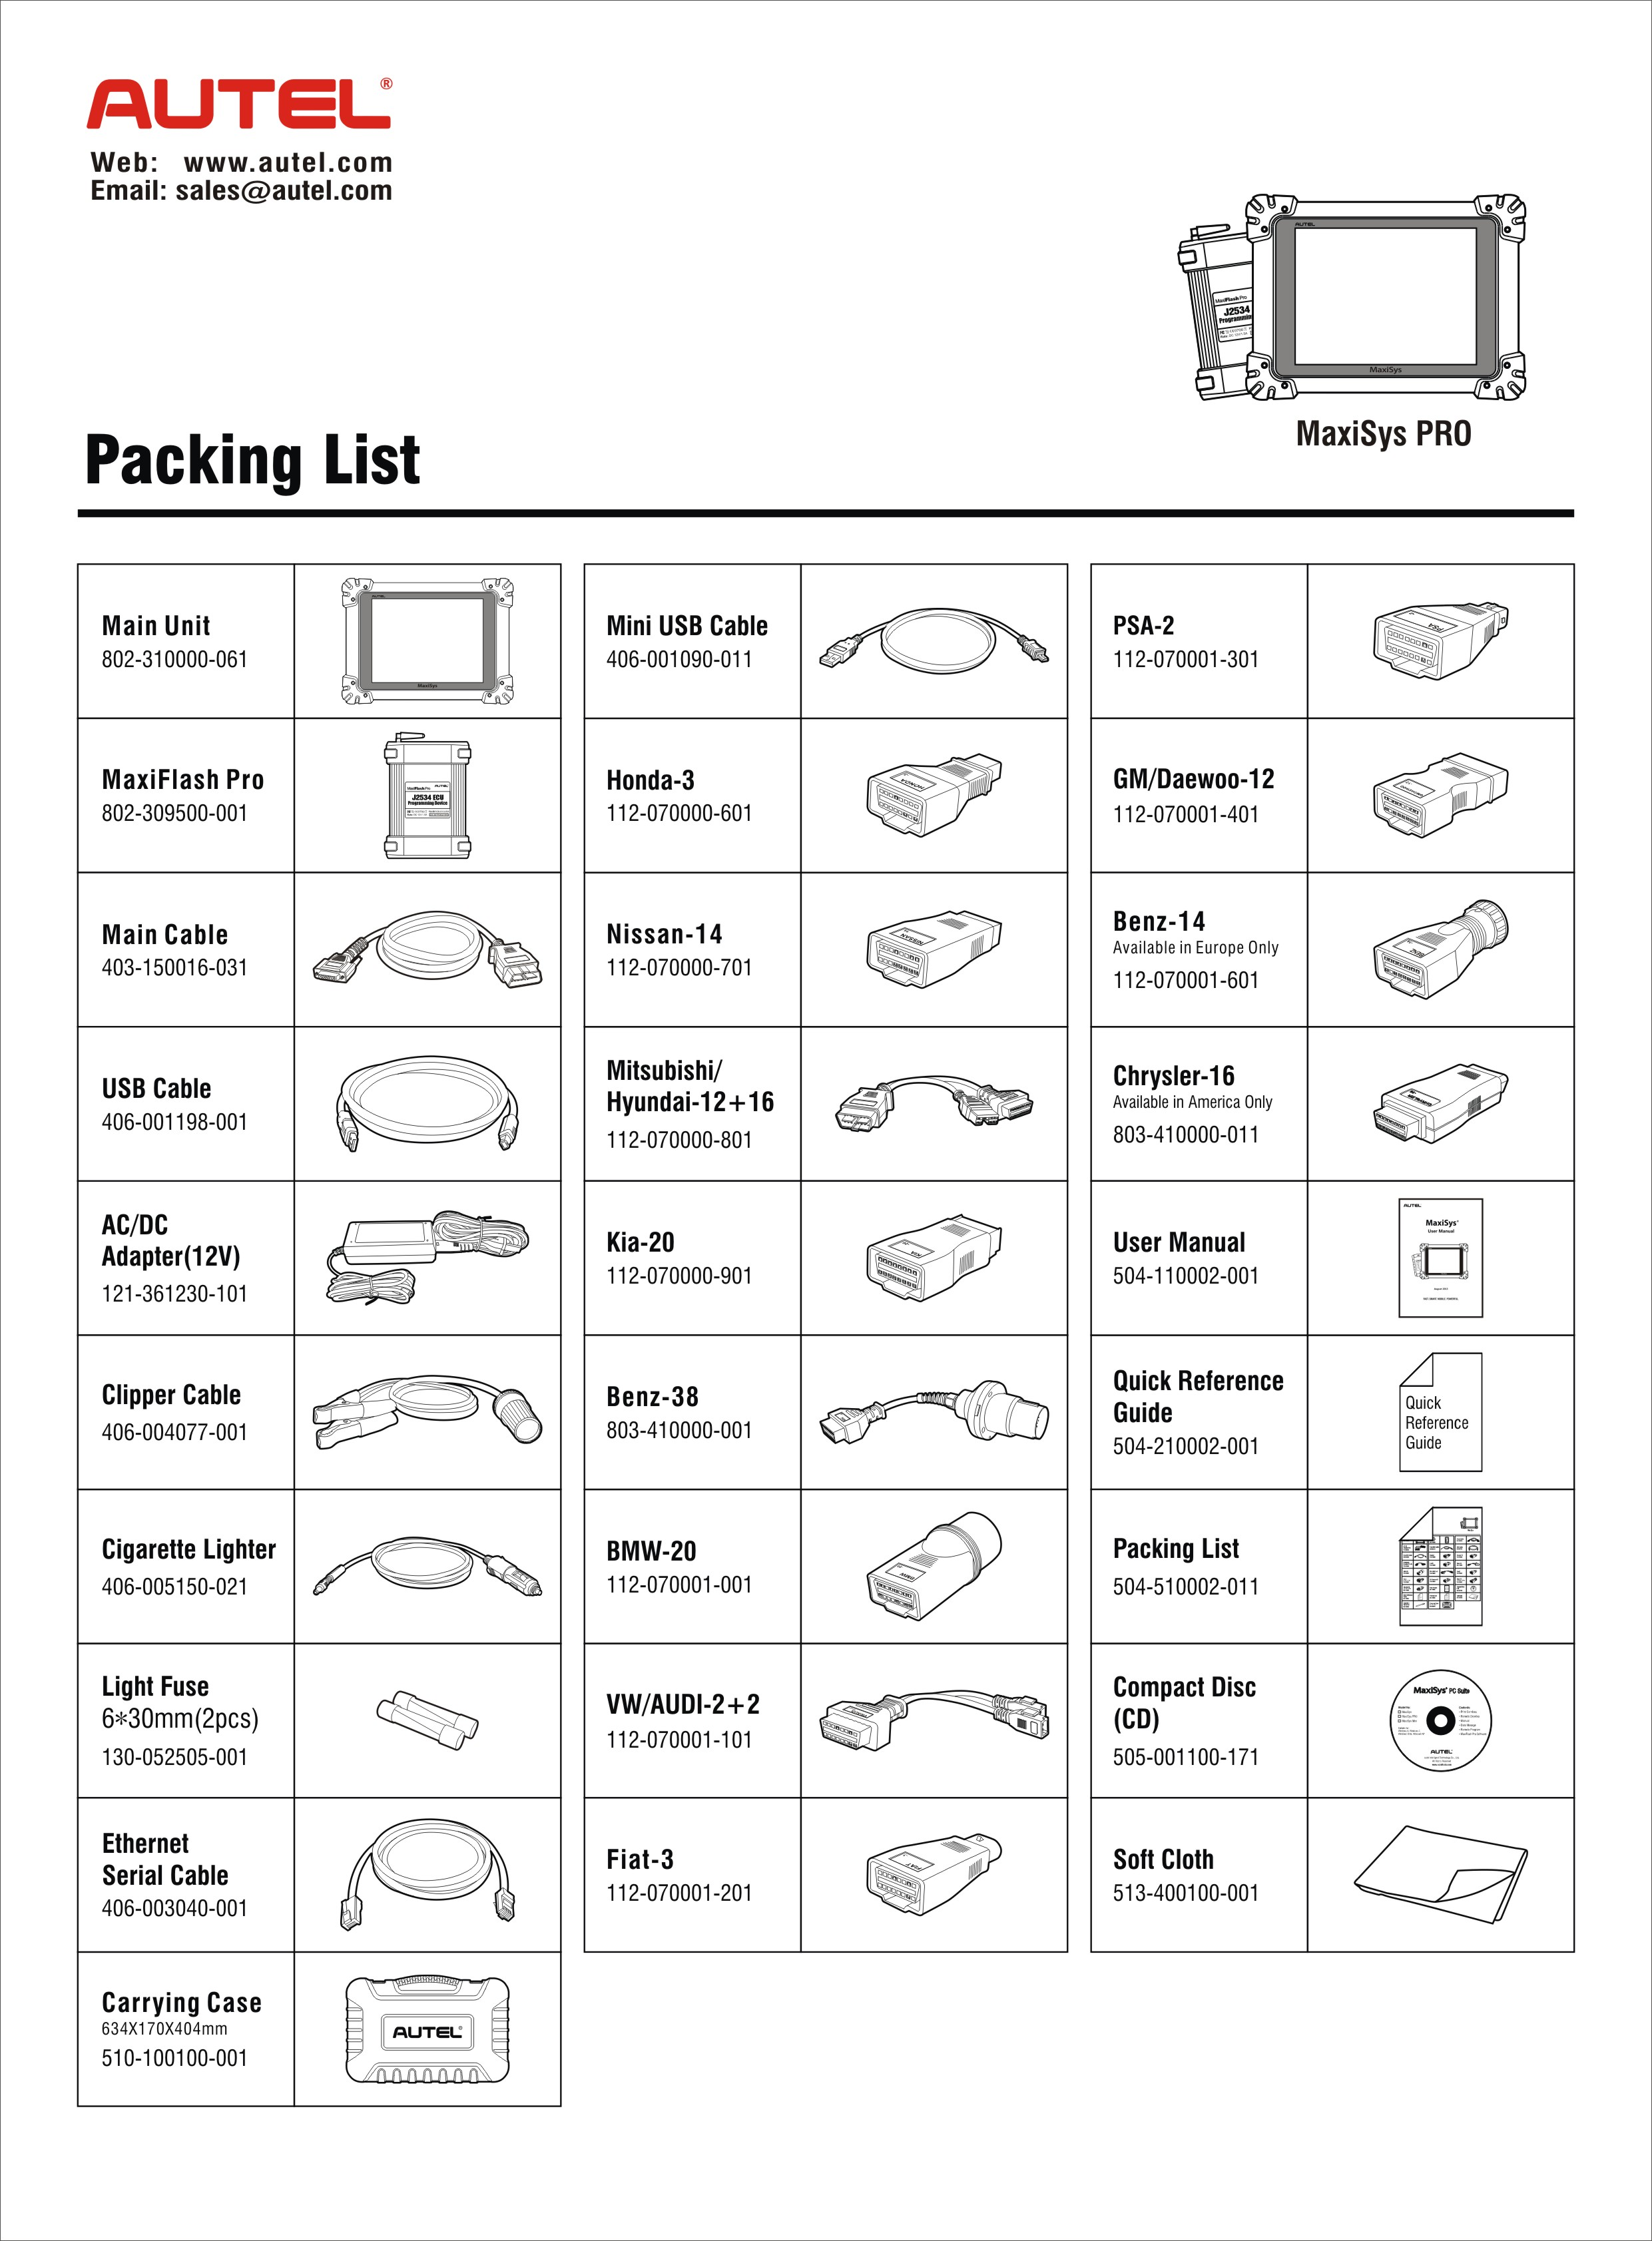 MaxiSys MS908 Packing List